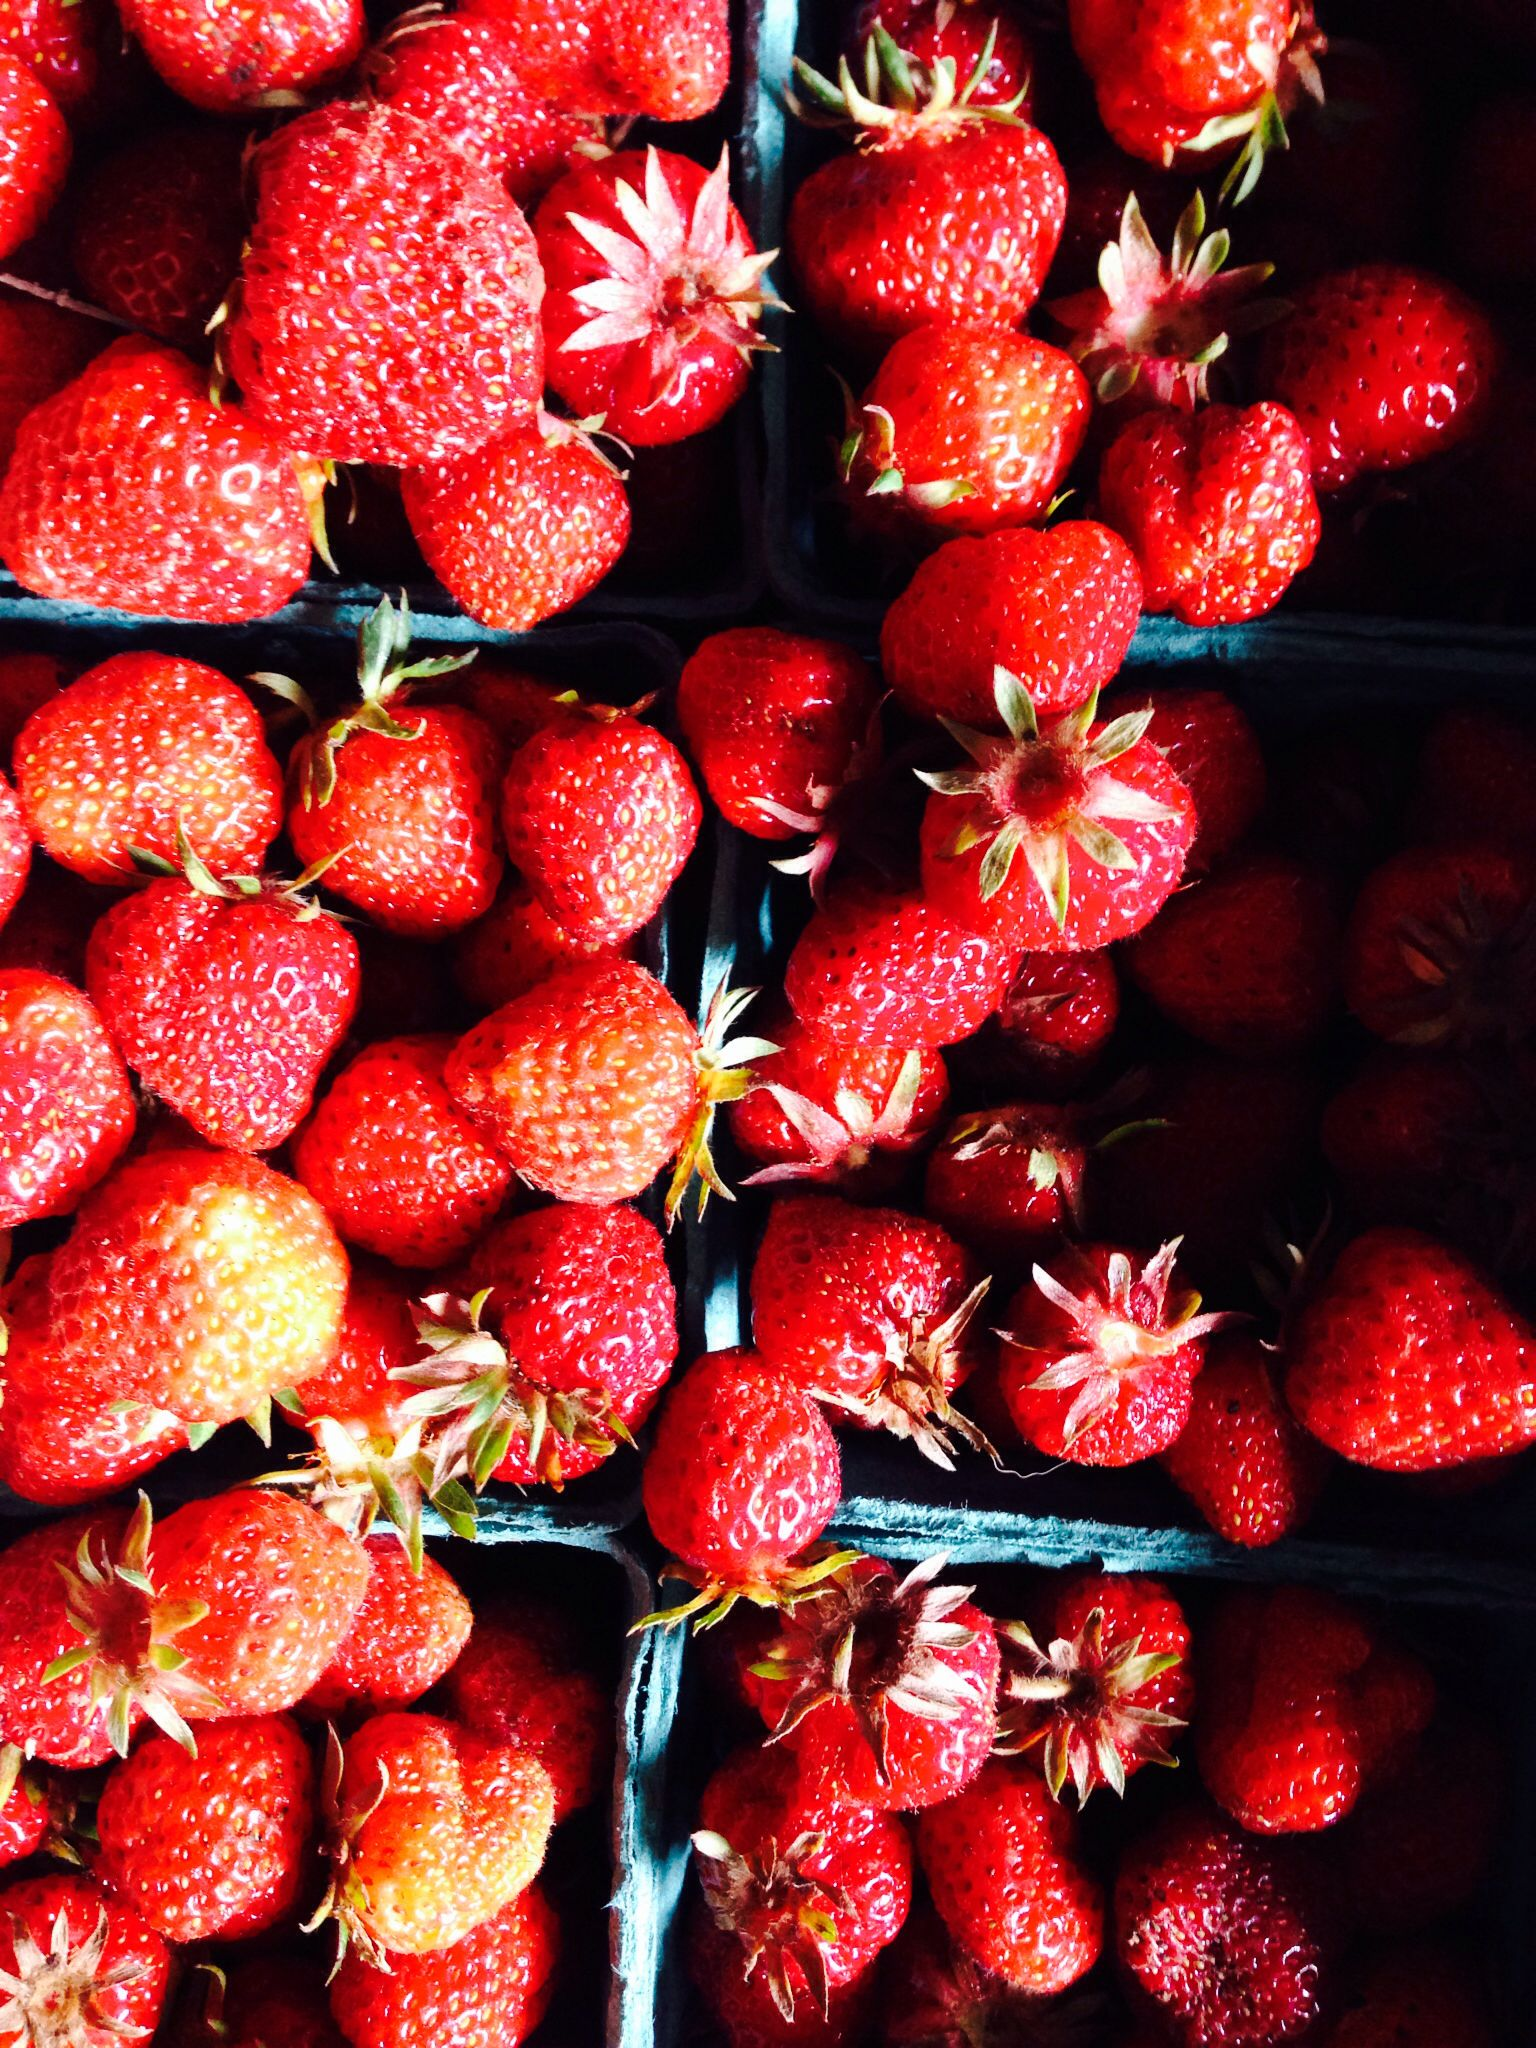 Boisfort Valley Farm organic local strawberries first of